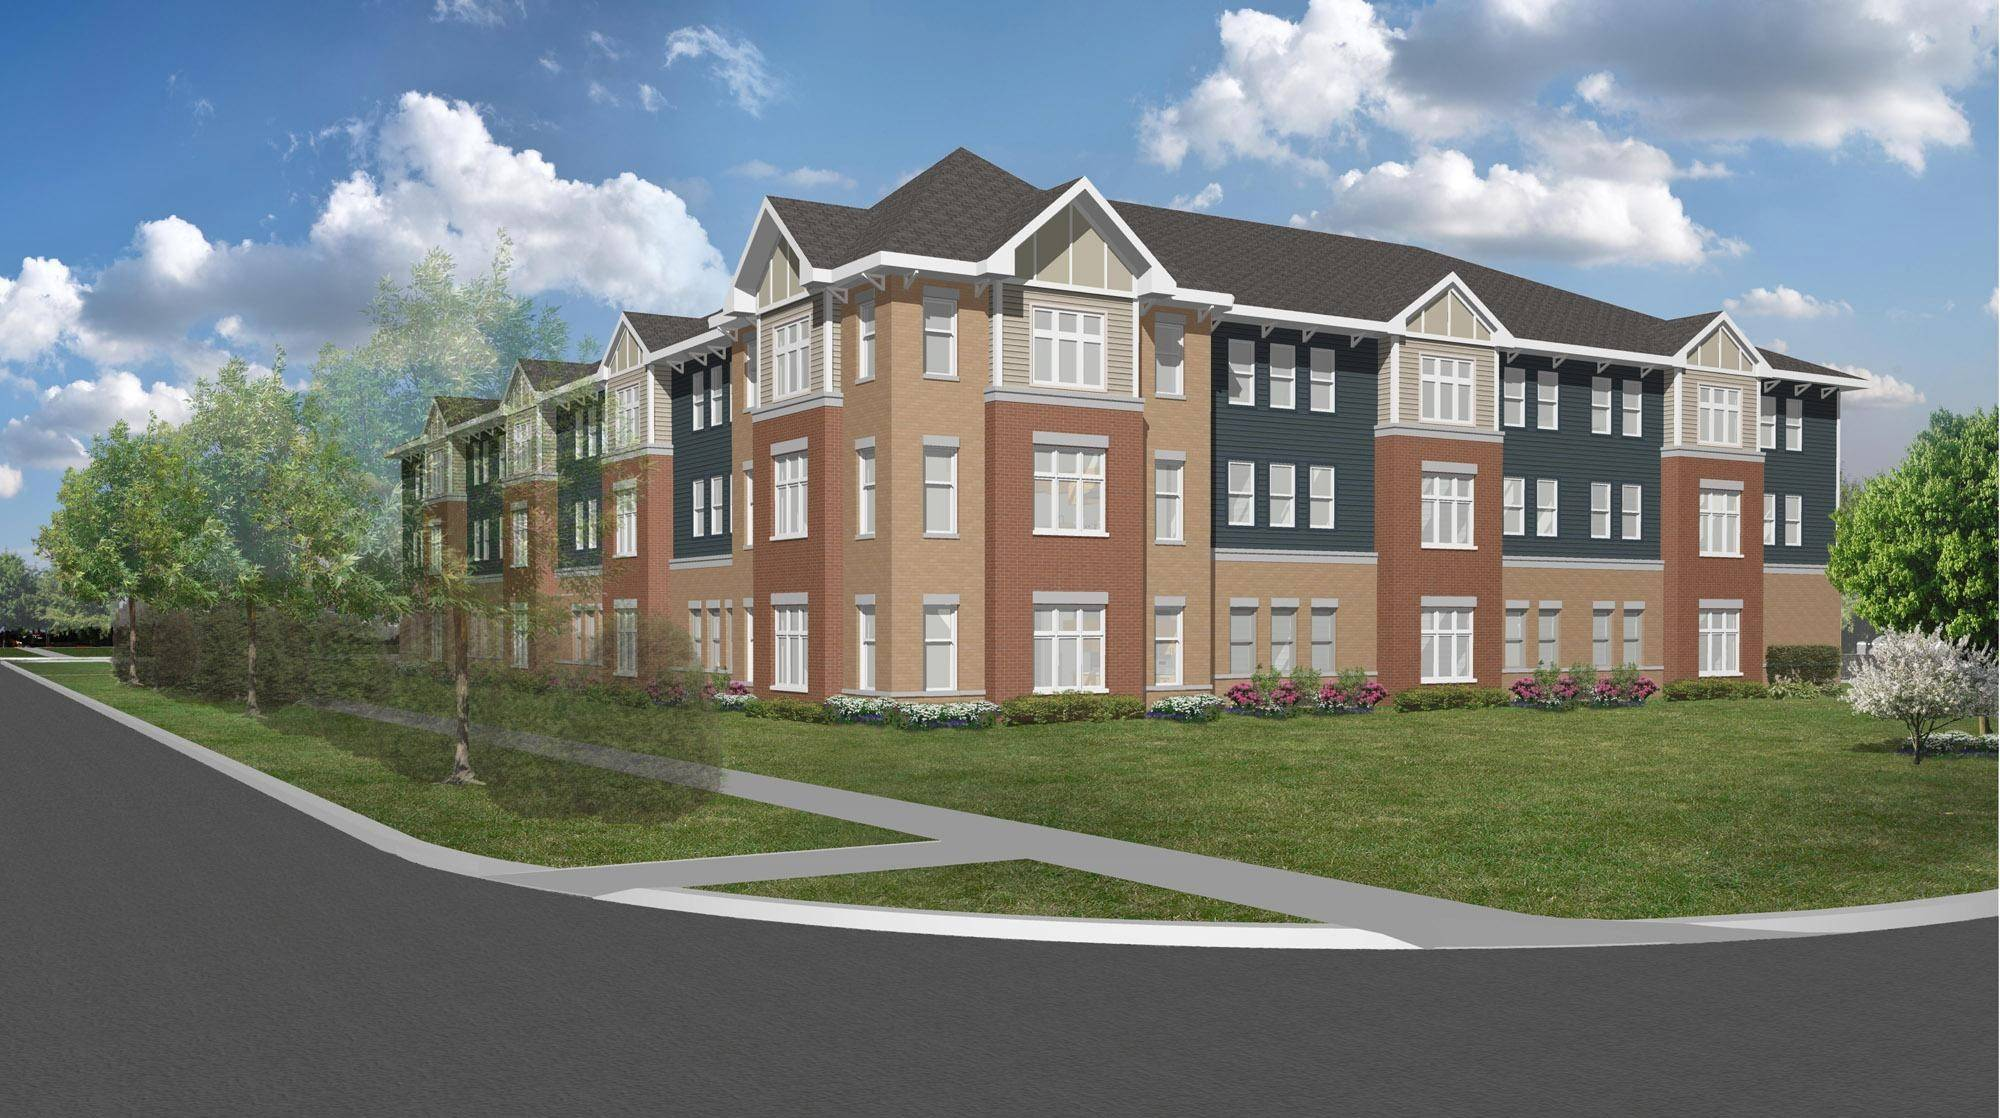 The developer behind the rejected Catherine Alice Gardens apartments for residents with disabilities in Palatine is asking a judge to reverse his earlier decision dismissing their lawsuit against the village. The case returns to court July 16.